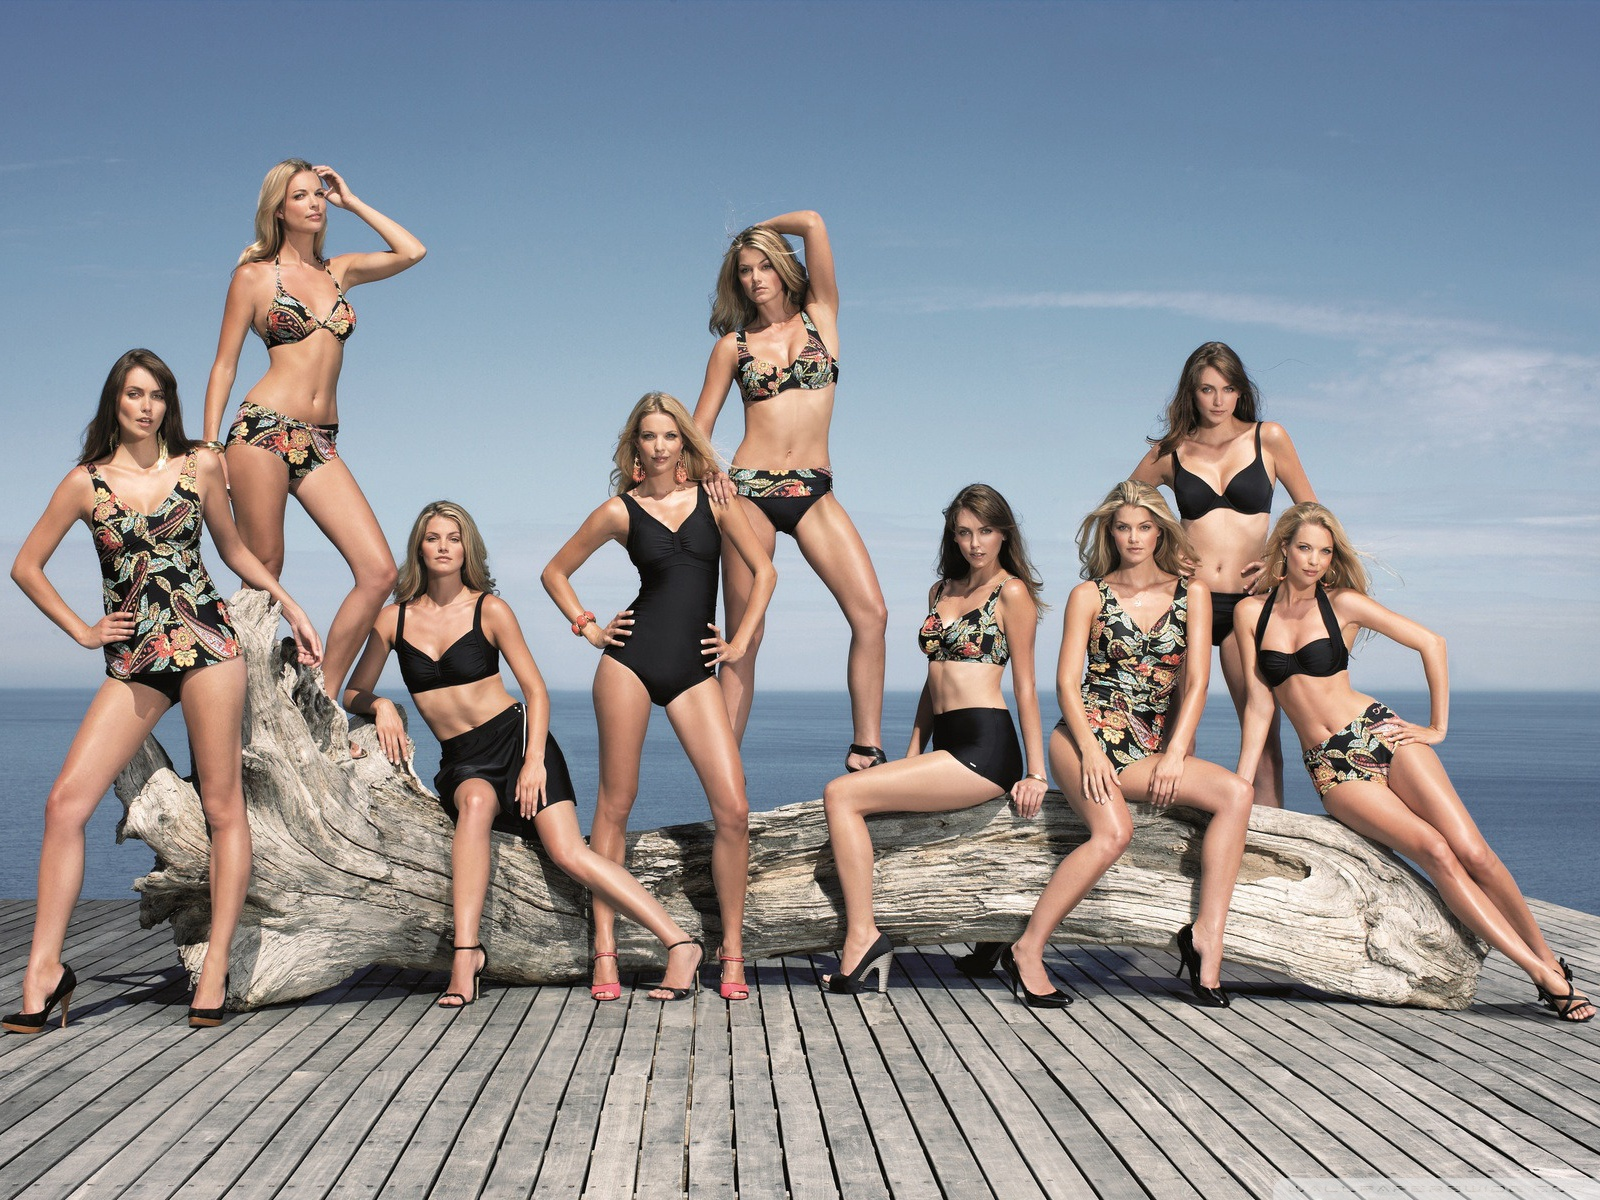 Swimsuit Models Wallpapers